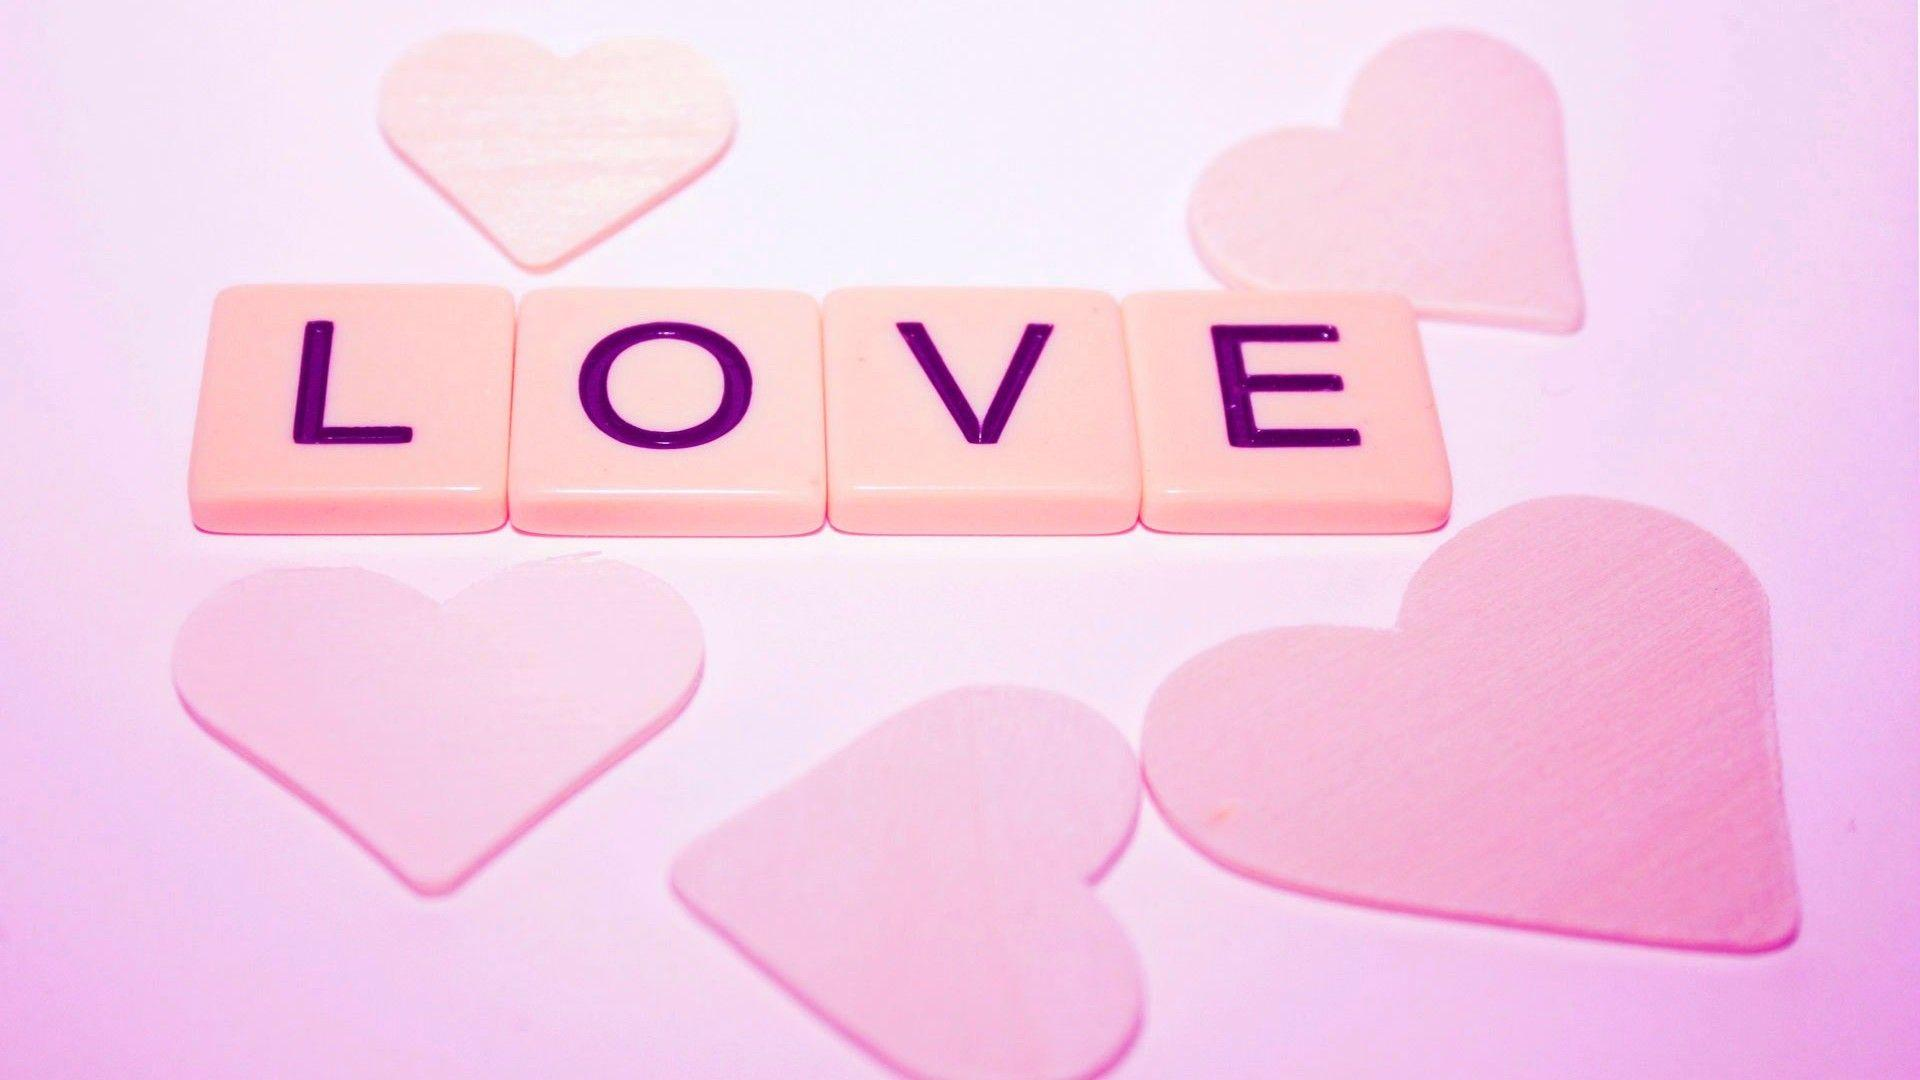 Background Laptop Wallpaper Love : cute Love Backgrounds - Wallpaper cave